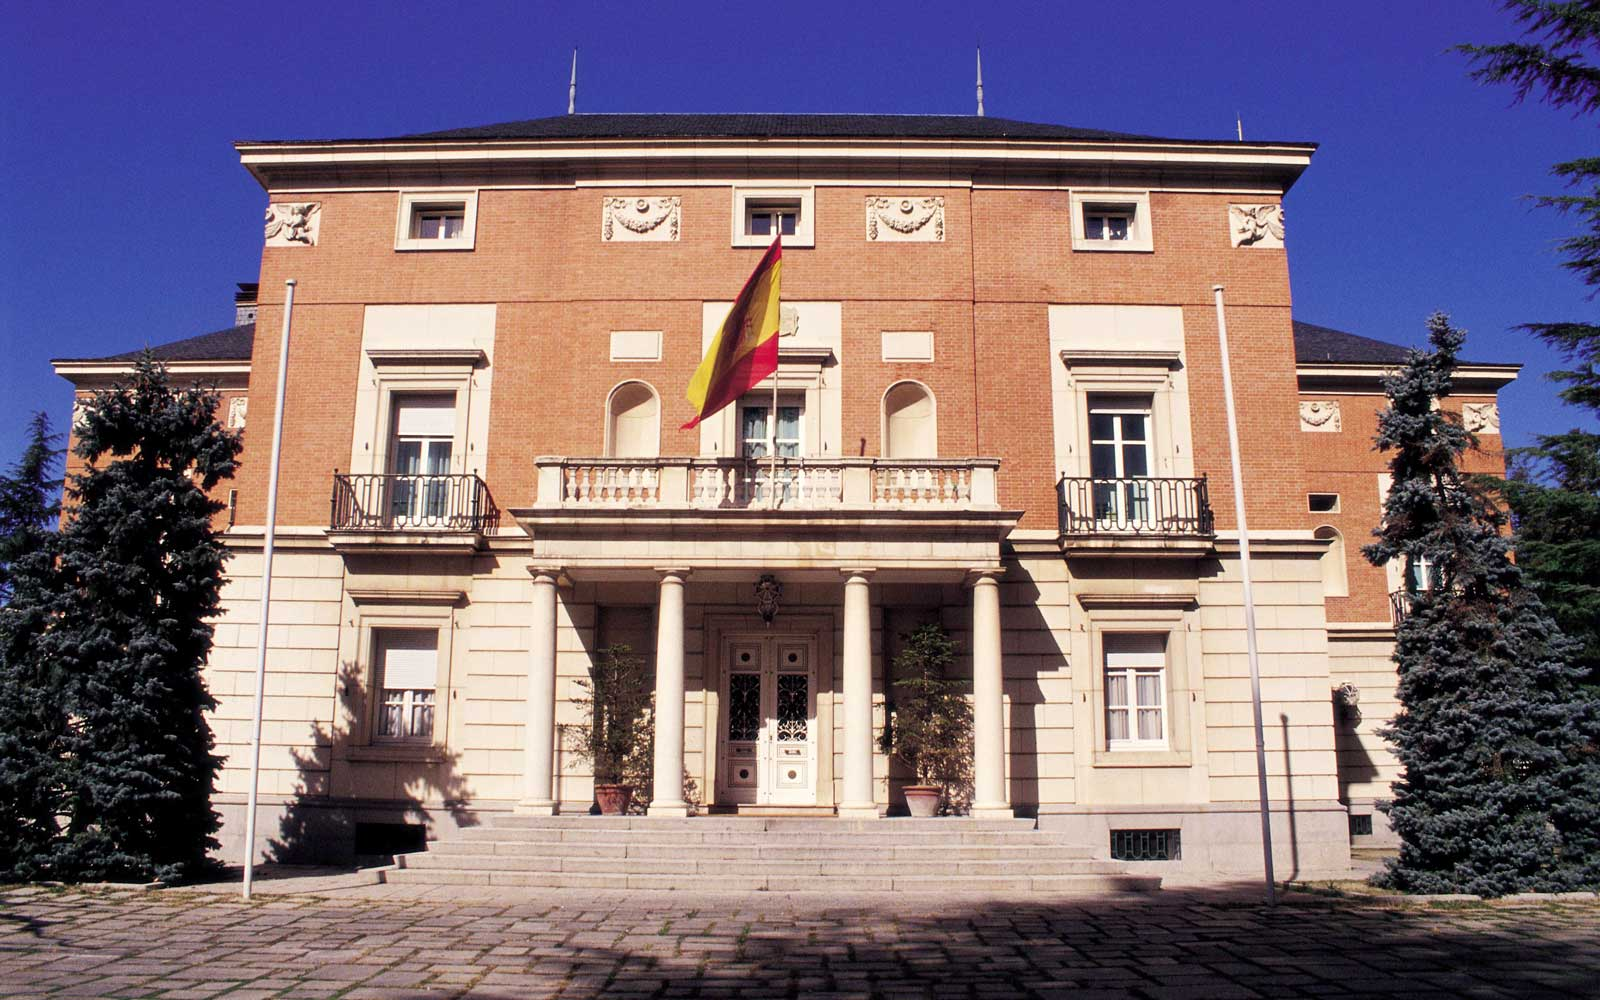 Palacio de La Moncloa,   Madrid,   Spain